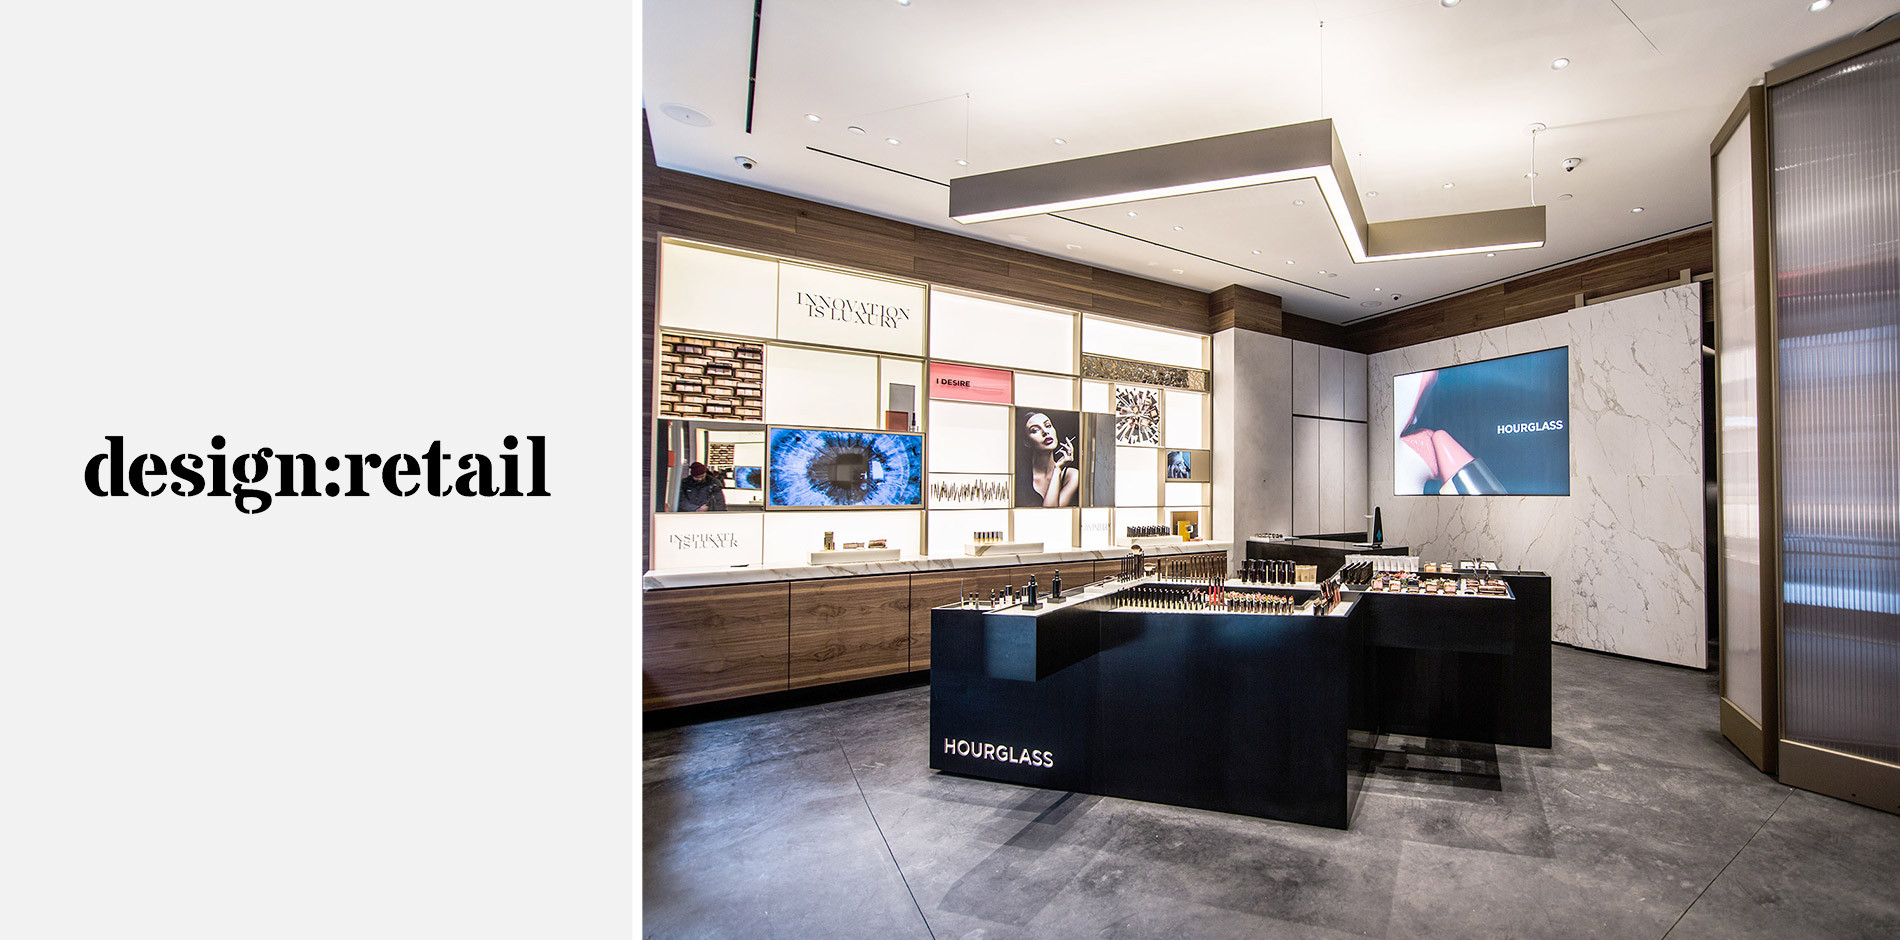 Ceiling Design Retail Design Retail Takes You Inside Hourglass Cosmetics